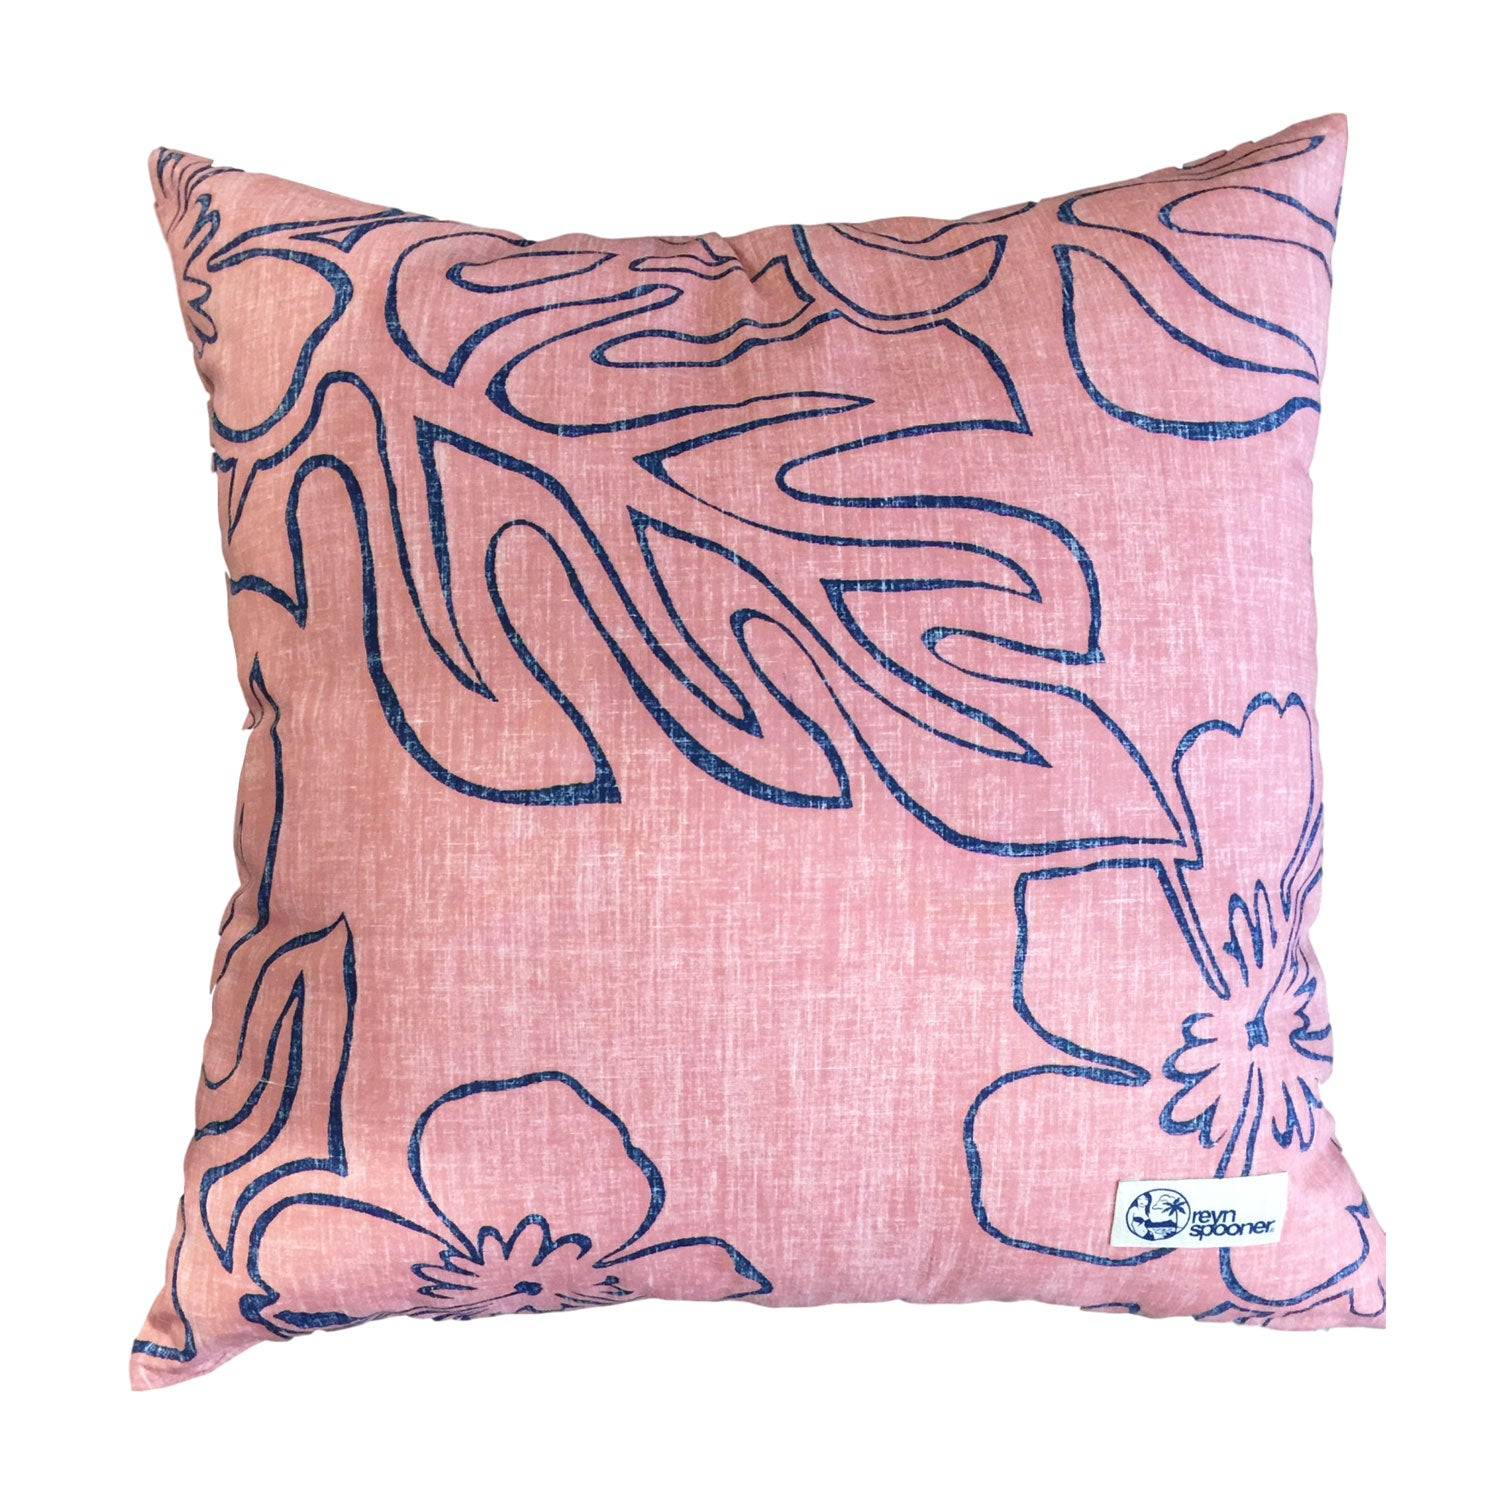 2017 THINK PINK MONSTERA INK / PILLOW COVER SET - Zoomed